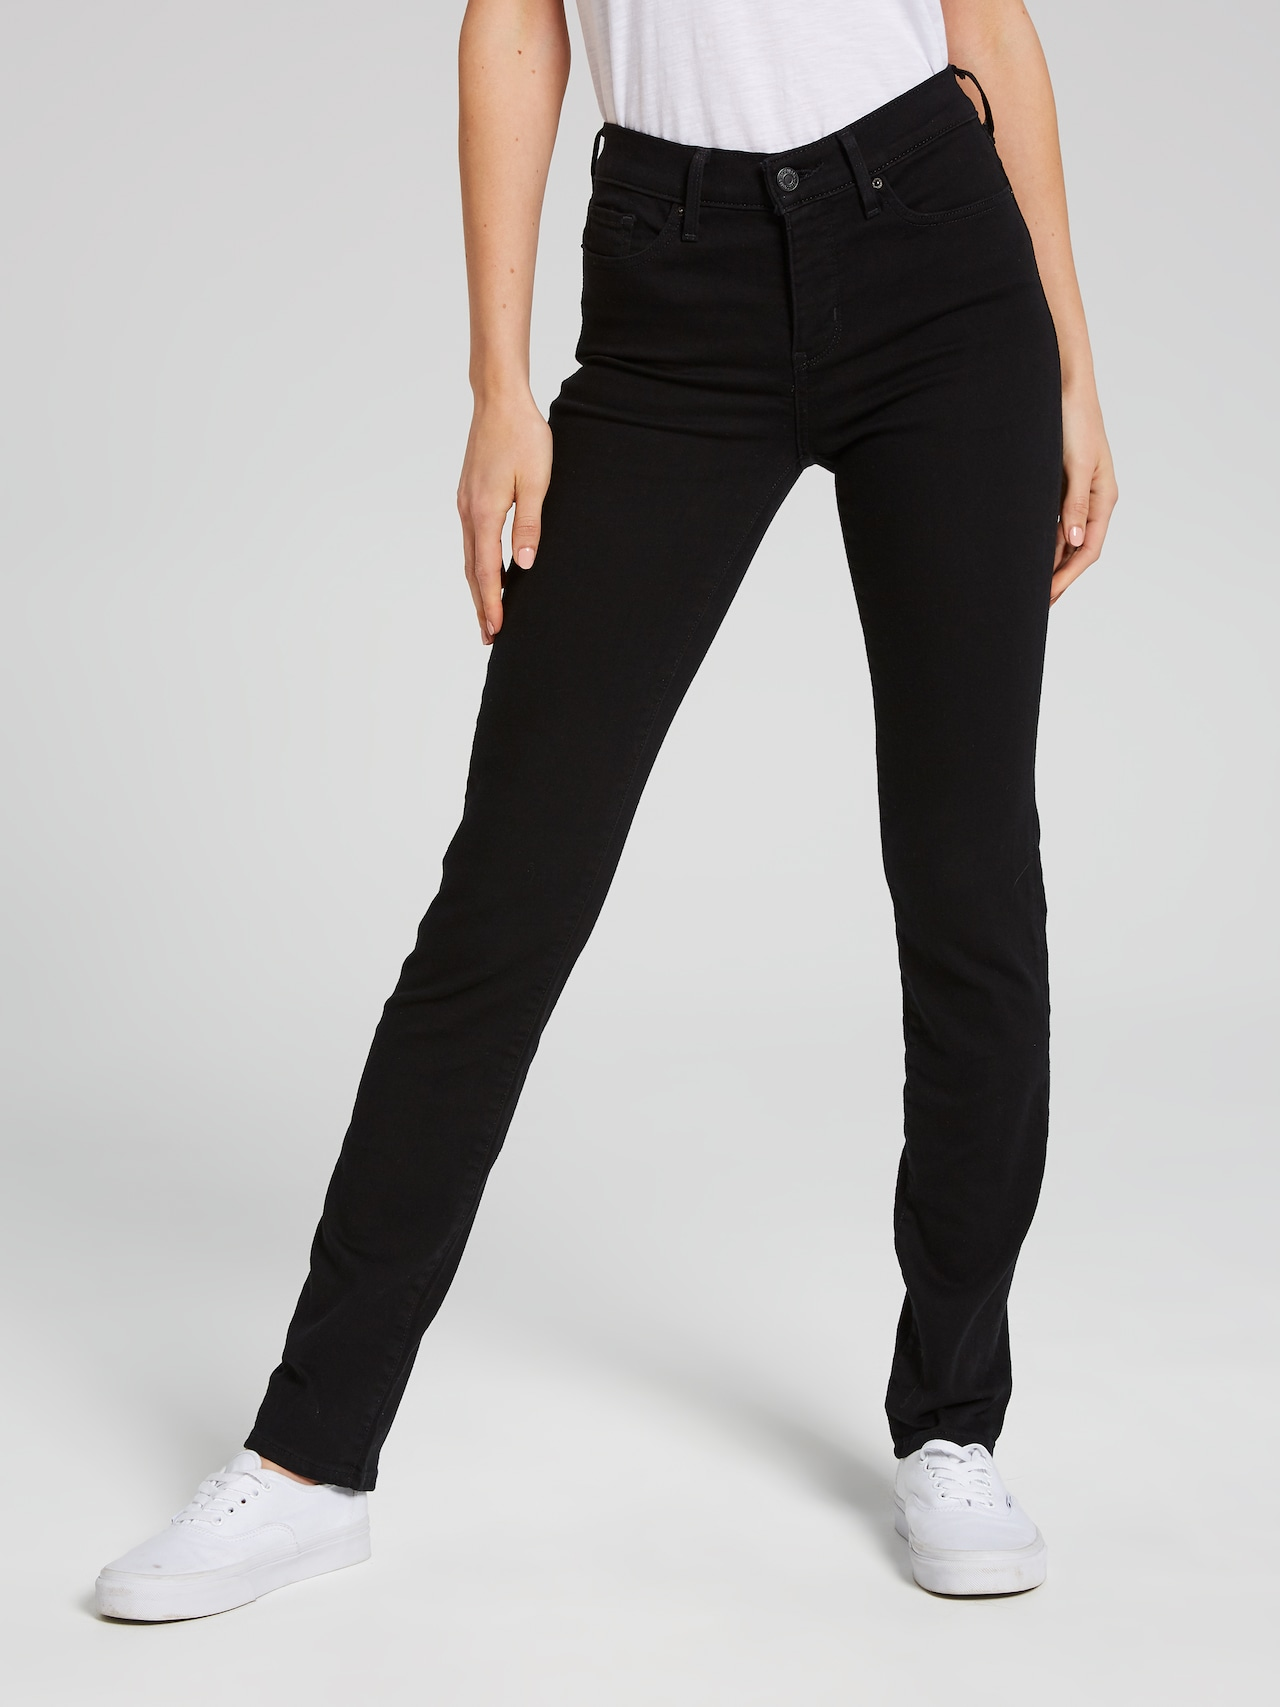 93d22ae1 Levi's 312 Shaping Slim Jean In Black Sheep - Just Jeans Online